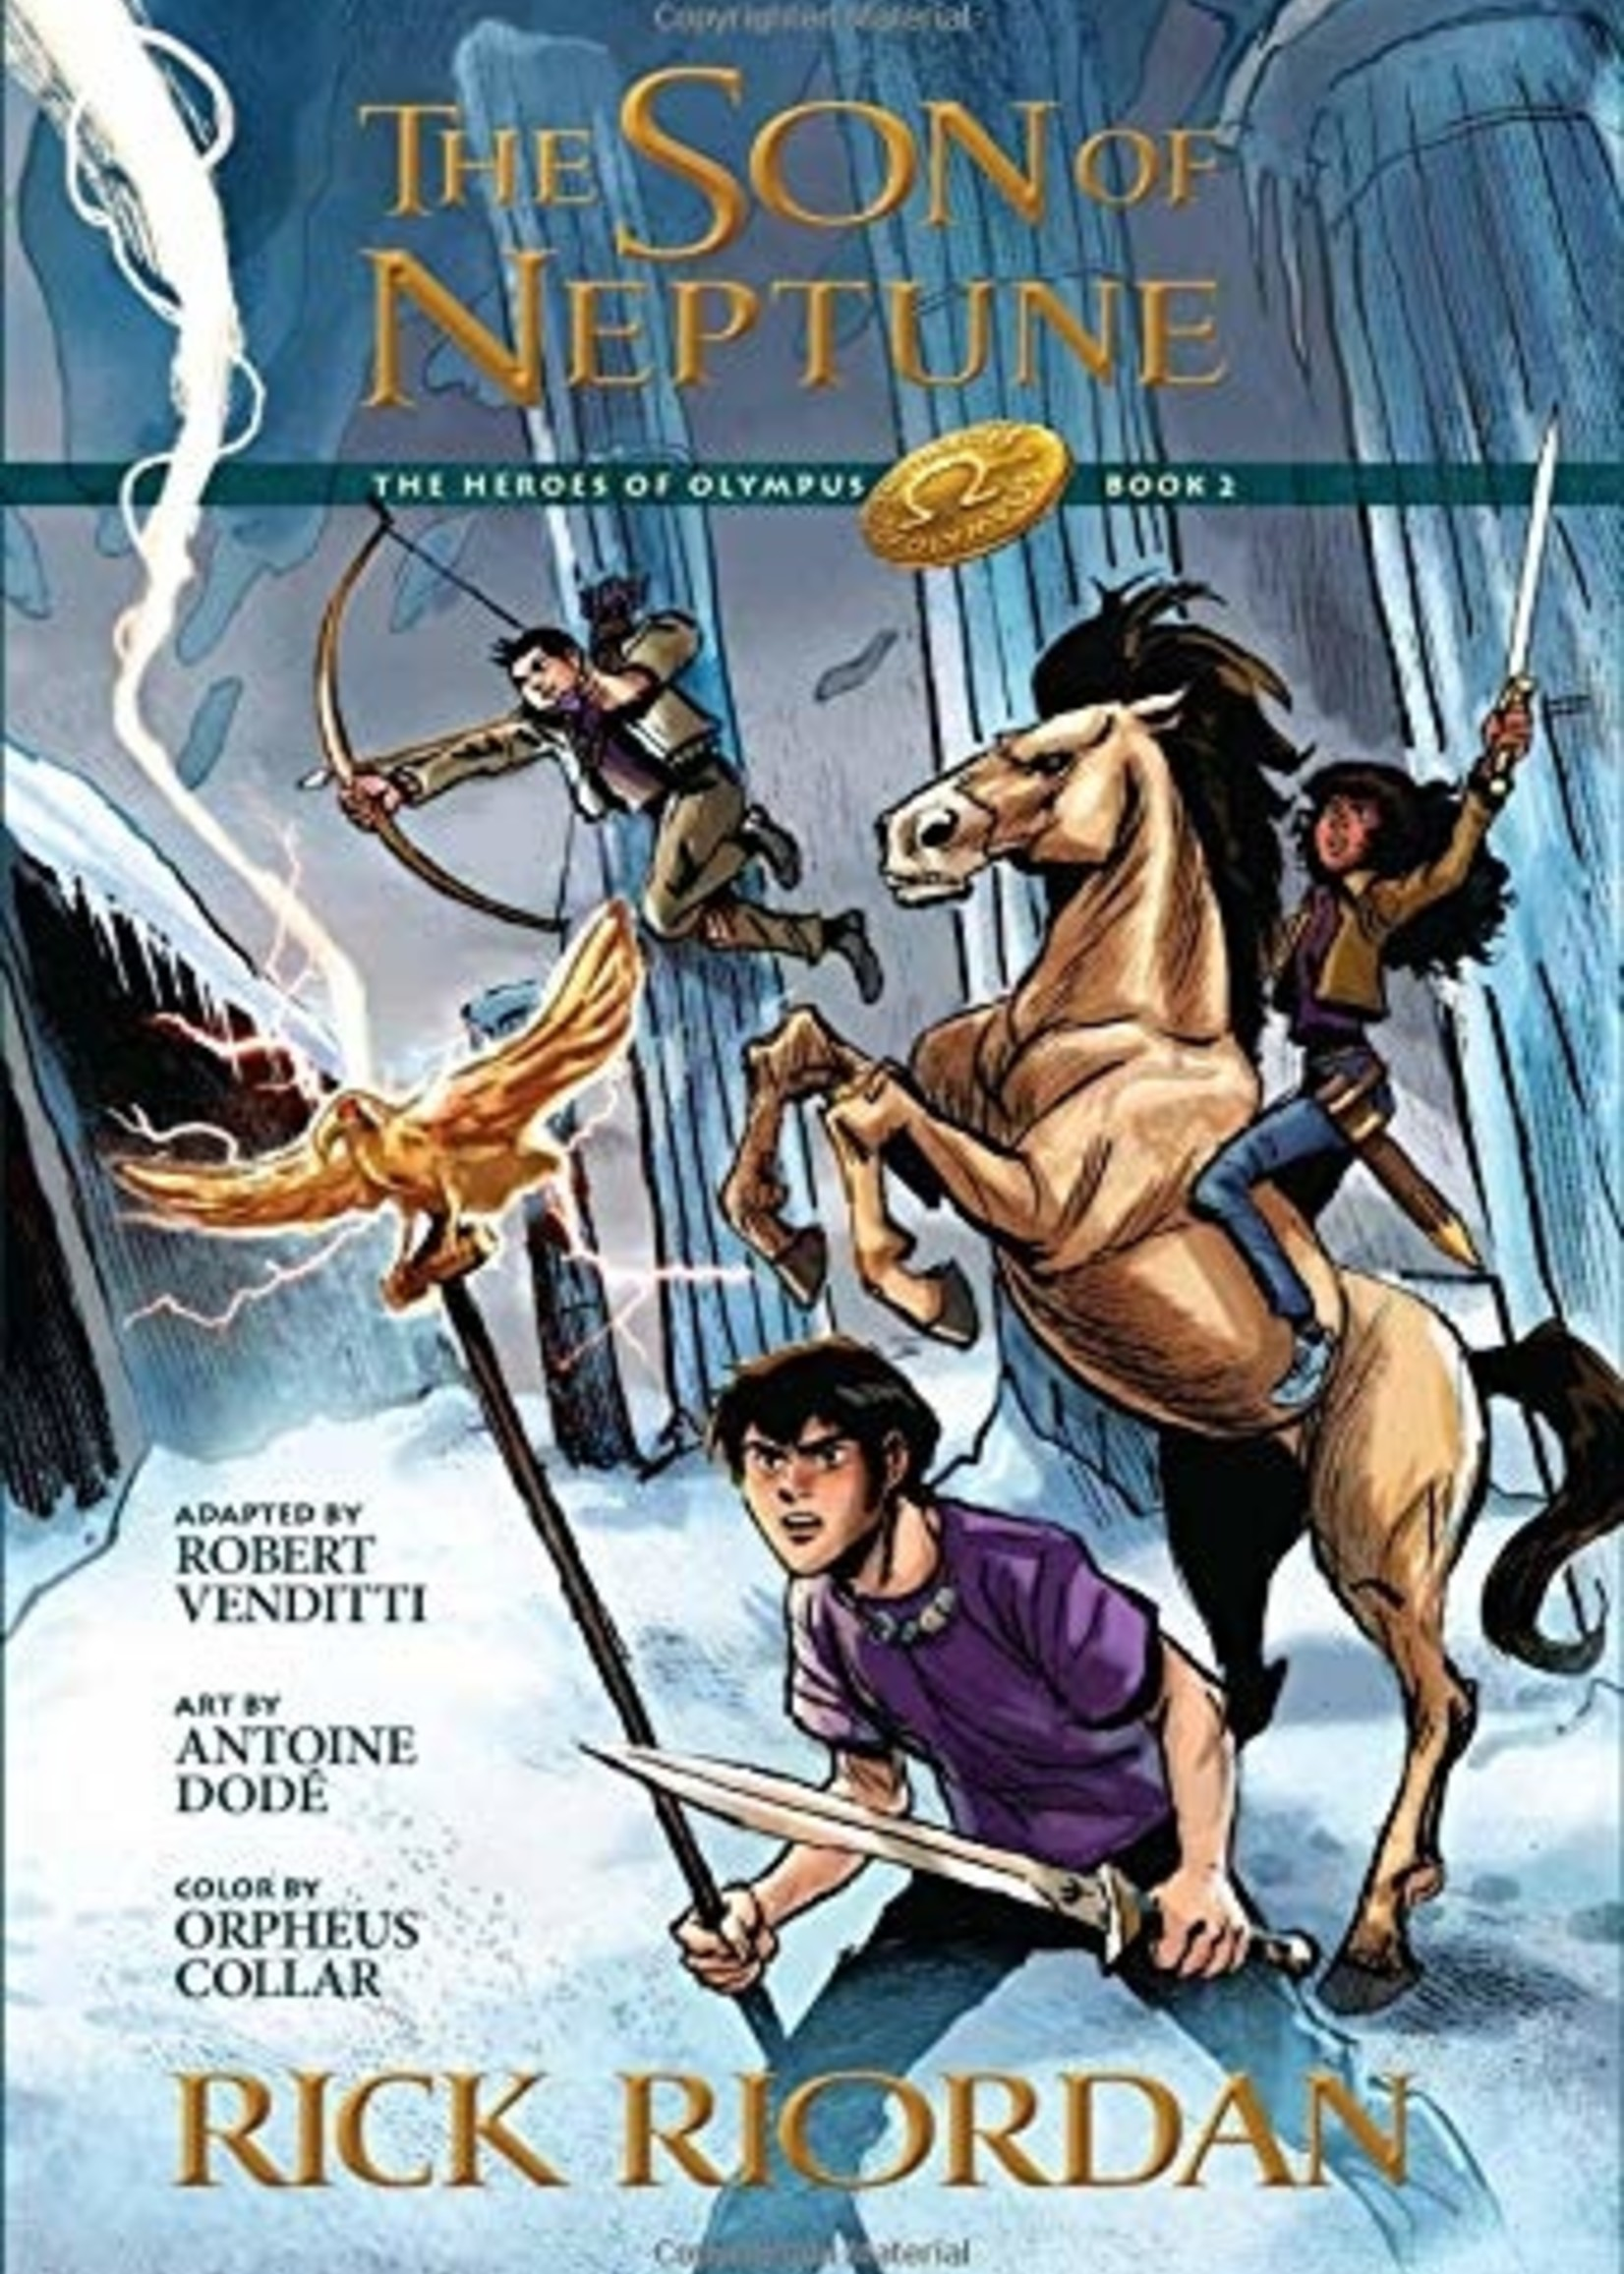 The Heroes of Olympus #02, The Son of Neptune Graphic Novel - Paperback